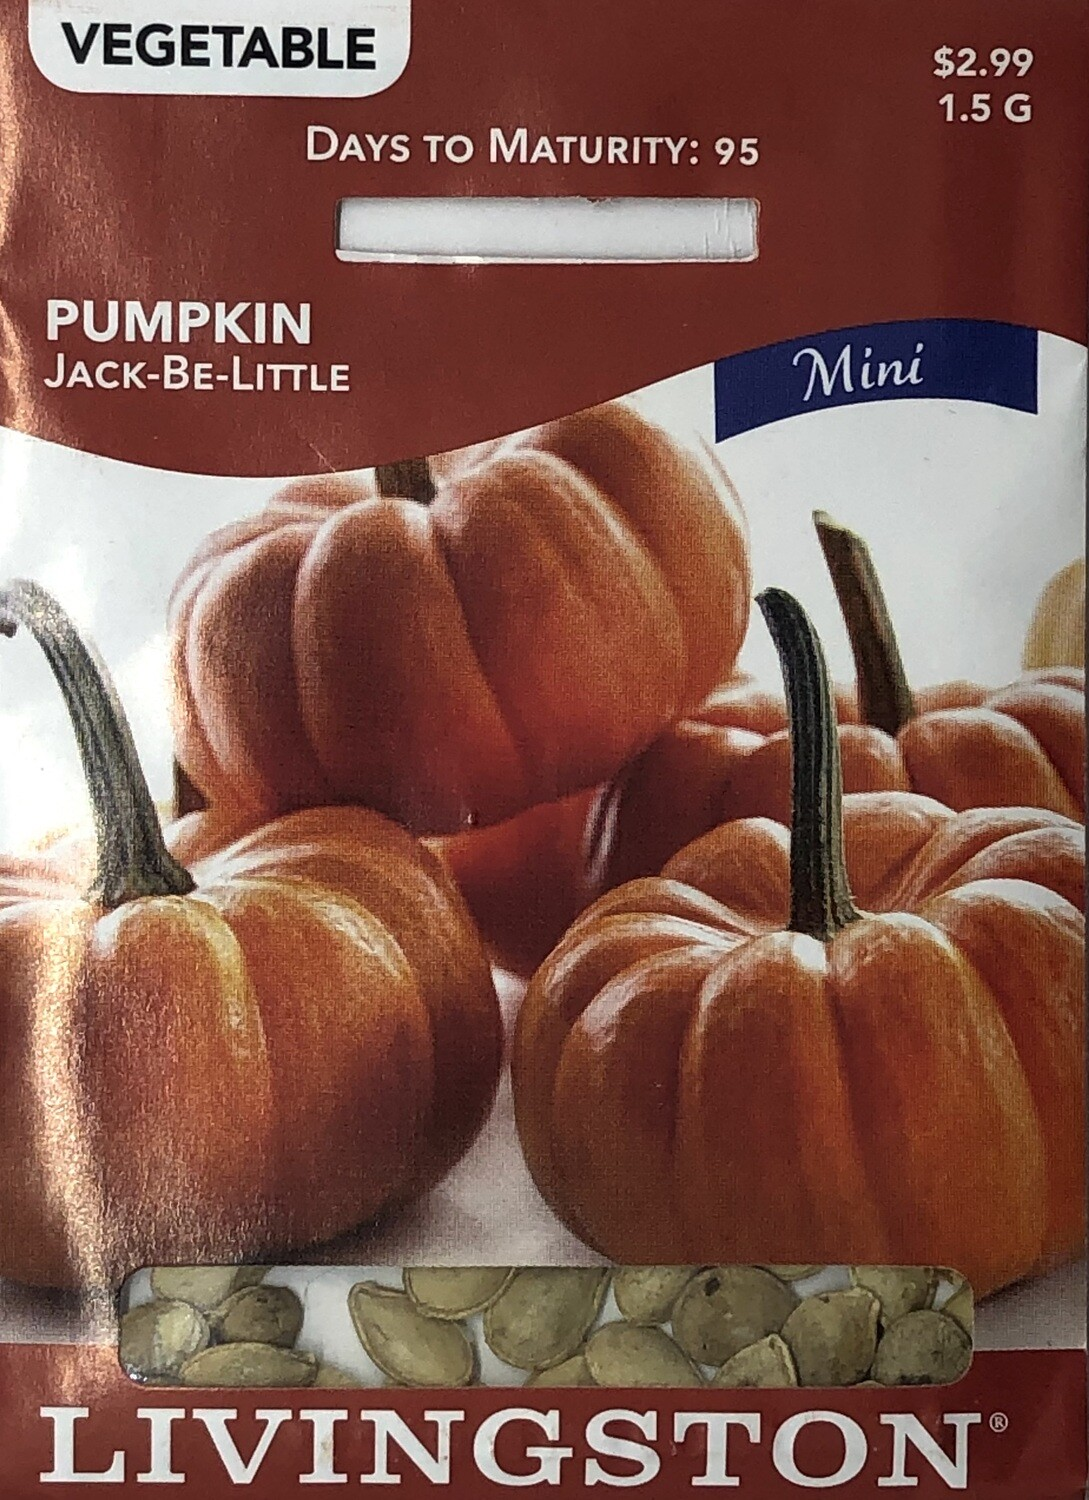 PUMPKIN - JACK-BE-LITTLE